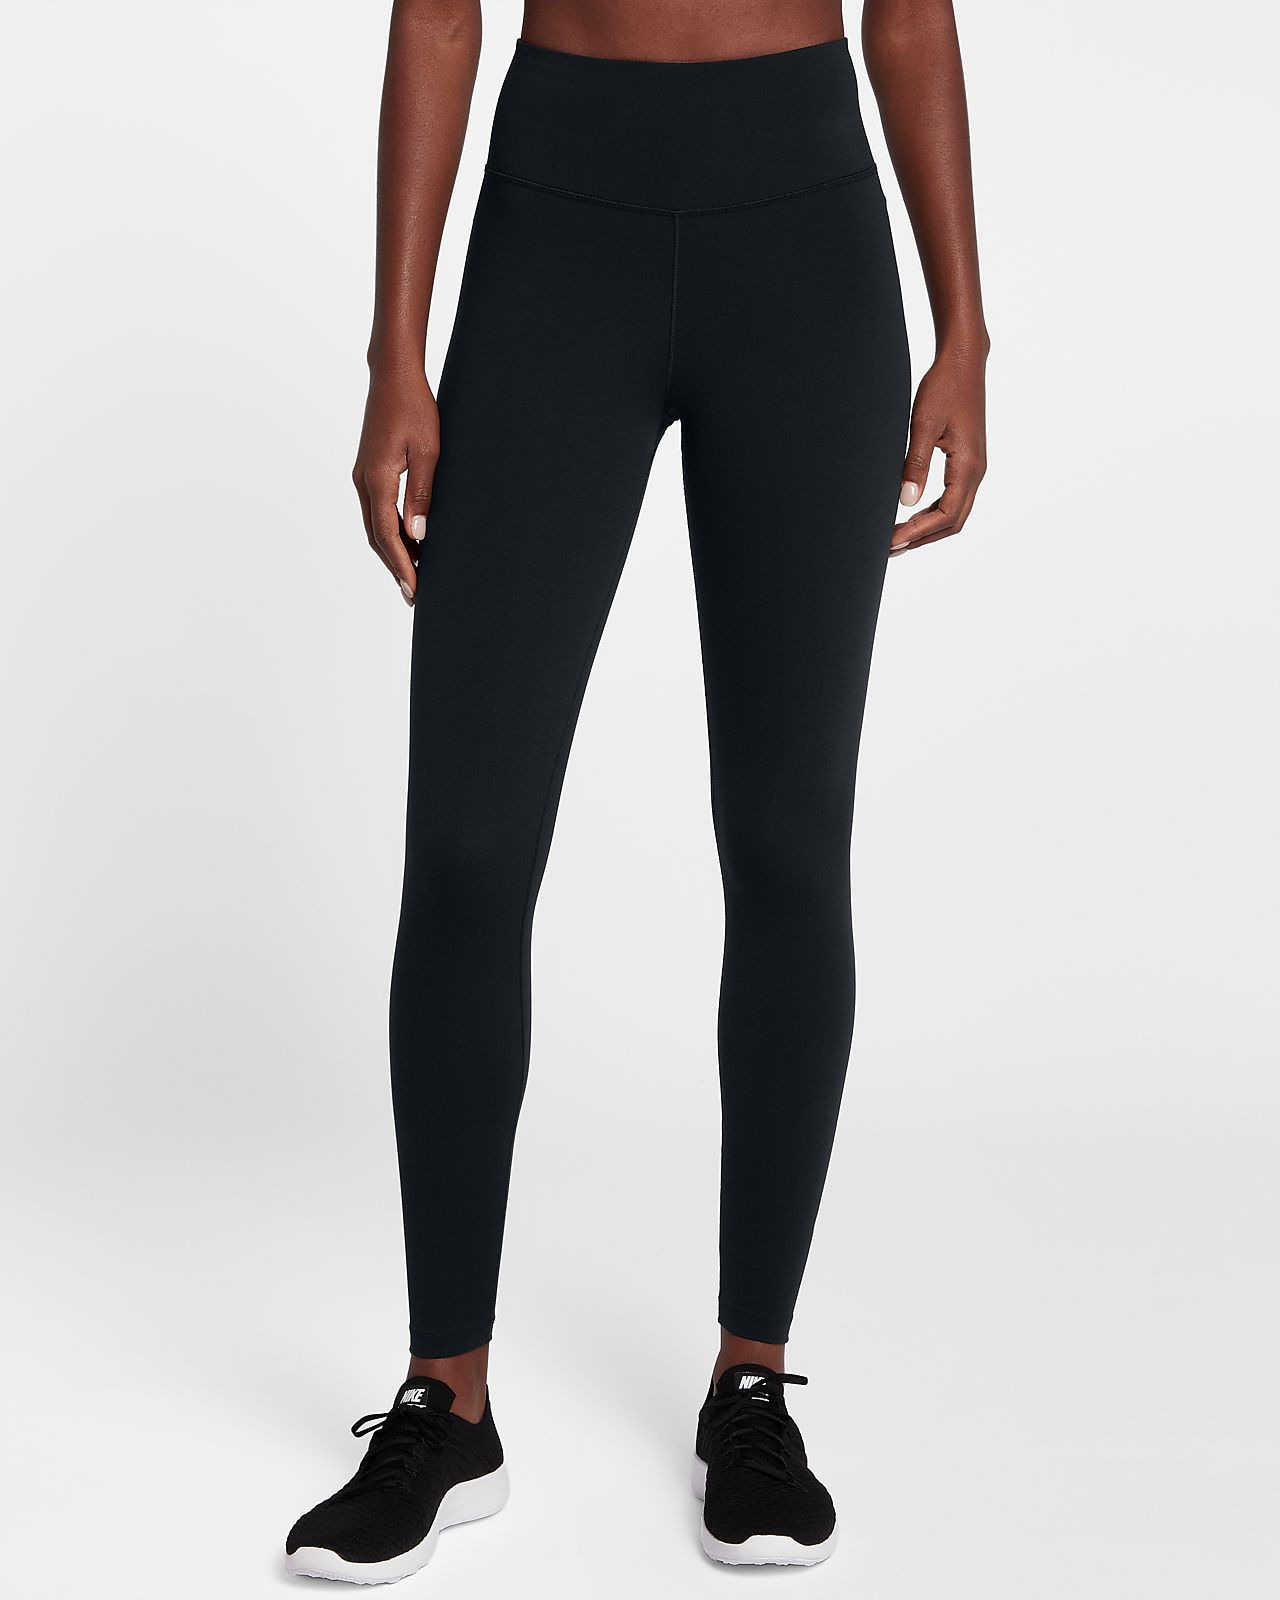 21dec721f5f27 Nike Sculpt Lux Women s High-Waist Training Tights. Nike.com CA